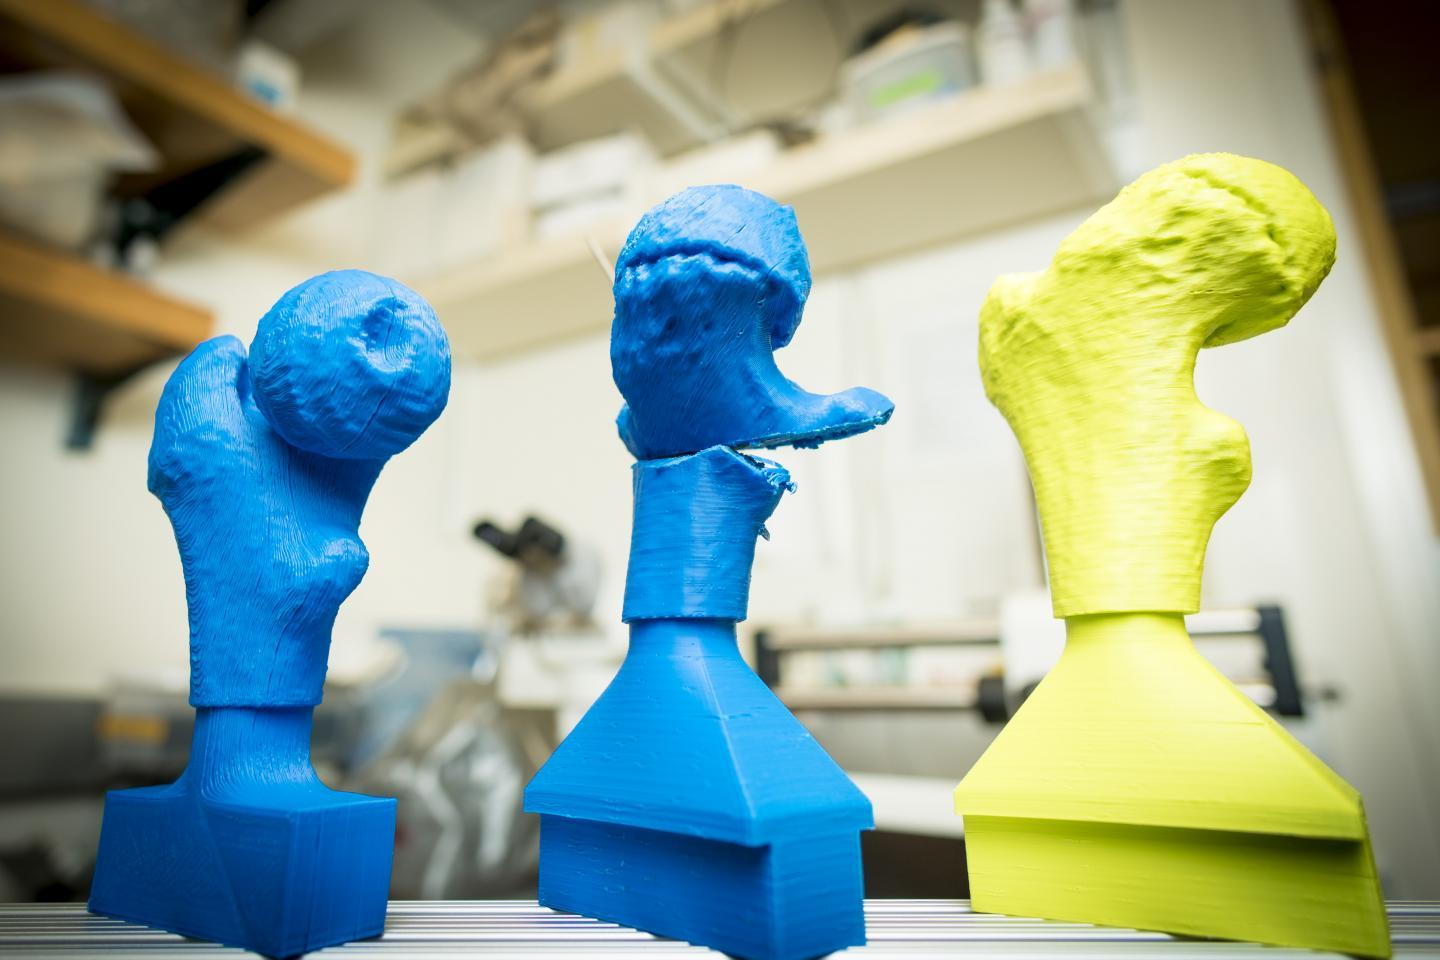 Some of the 3D-printed models used in the study